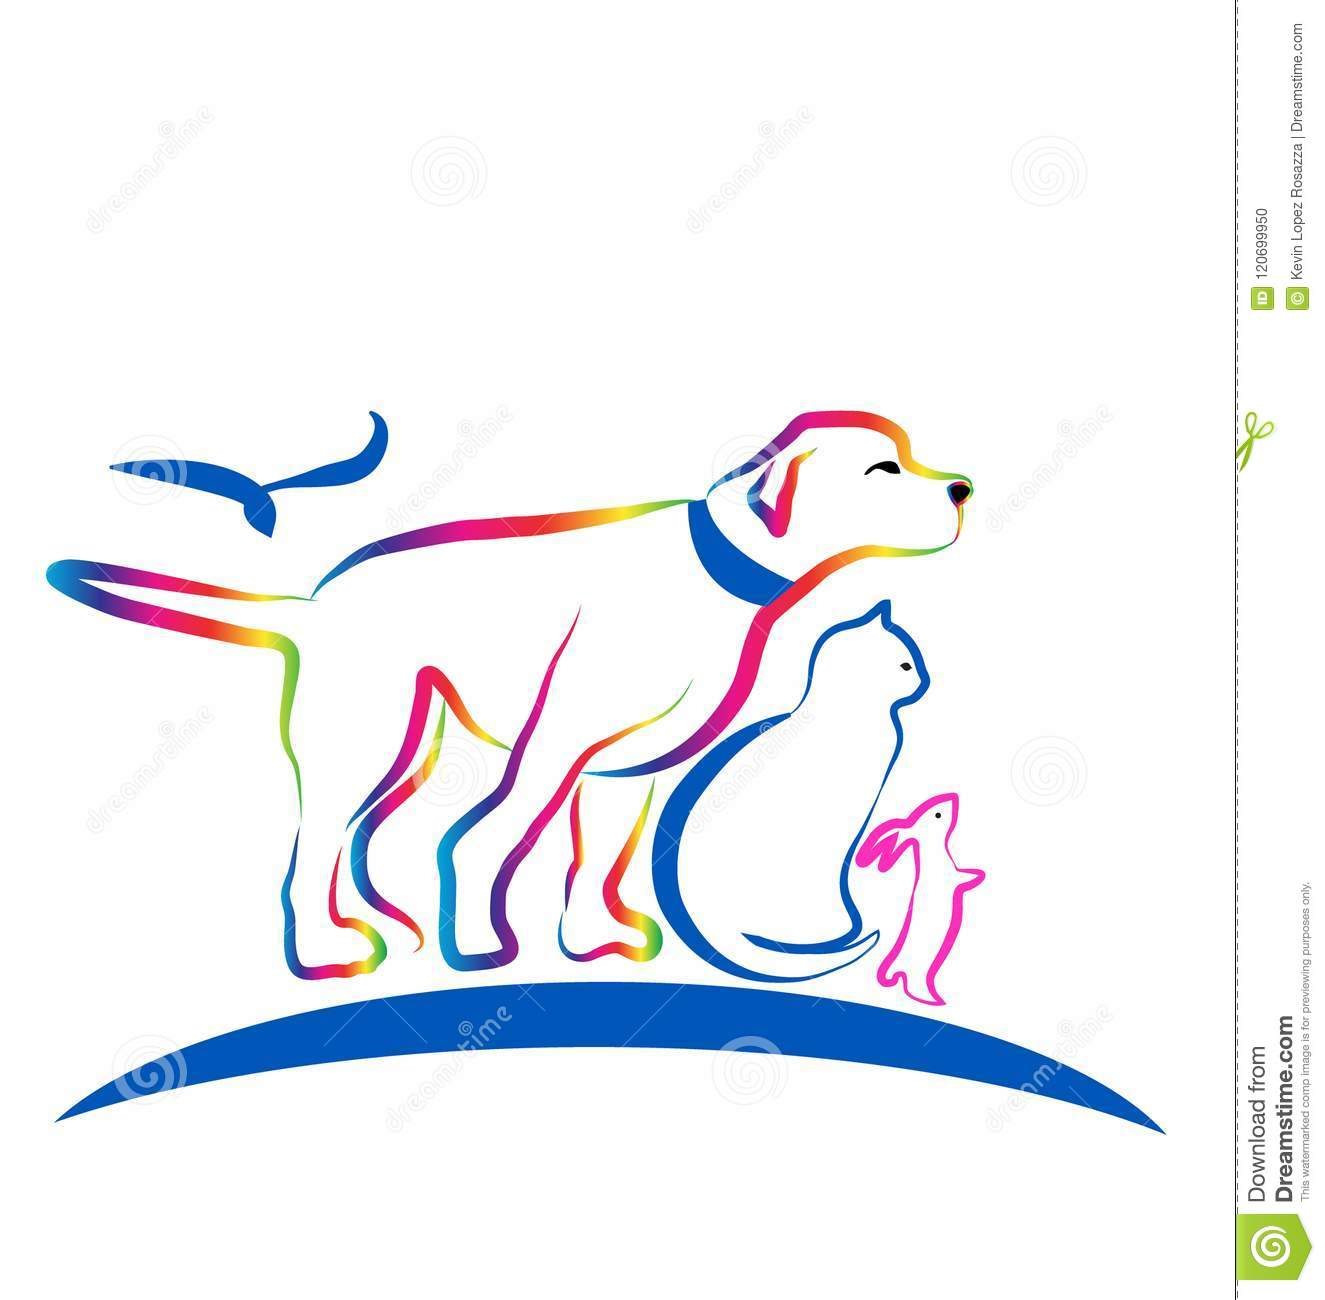 colorful pets dog cat rabbit line art vector stock vector rh dreamstime com Pet Sitting Services Clip Art Pet Food Clip Art